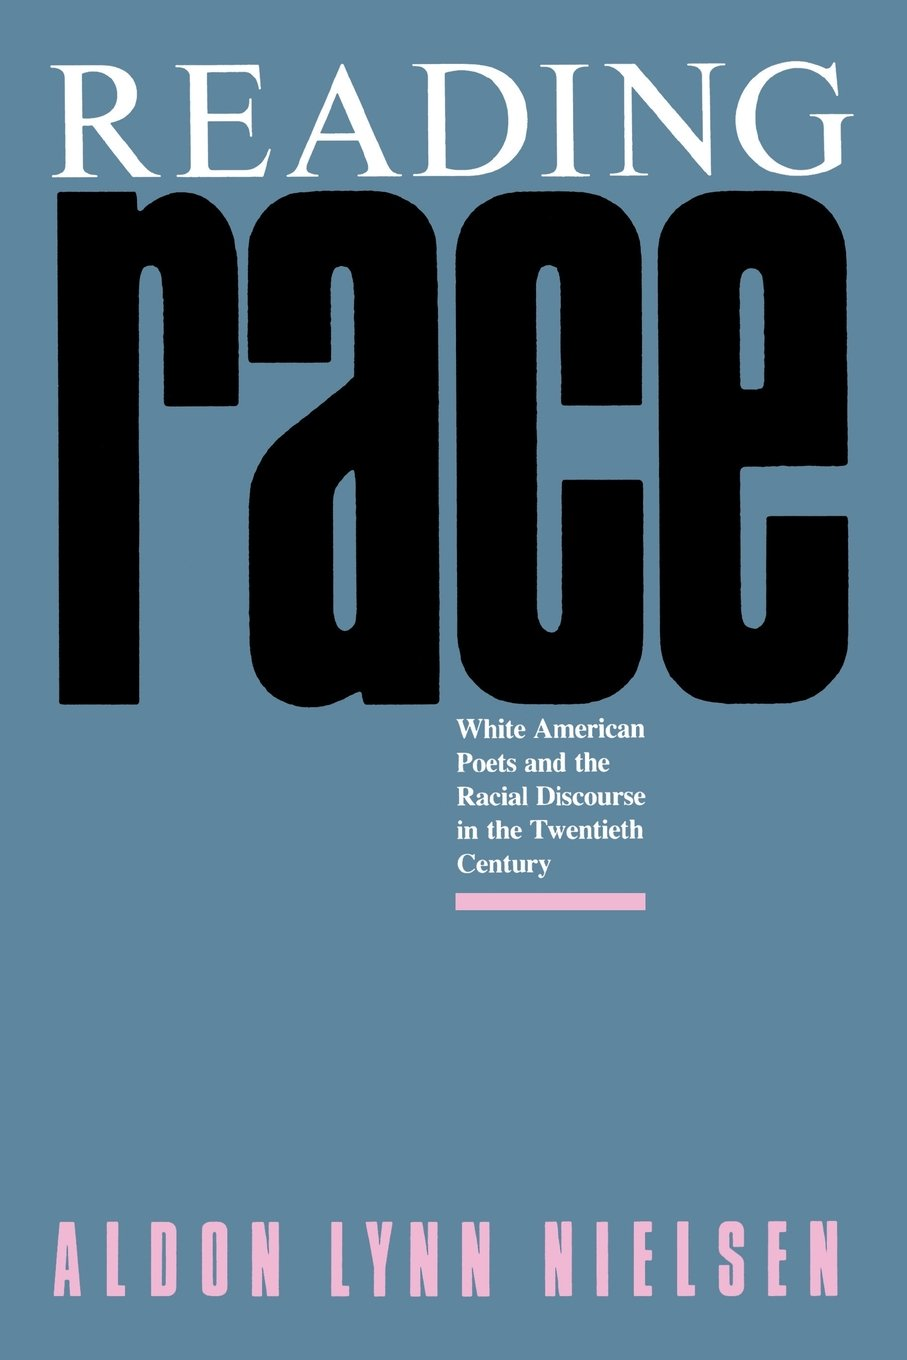 Reading Race: White American Poets and the Racial Discourse in the Twentieth Century (The South Atlantic Modern Language Association Awards Ser.)